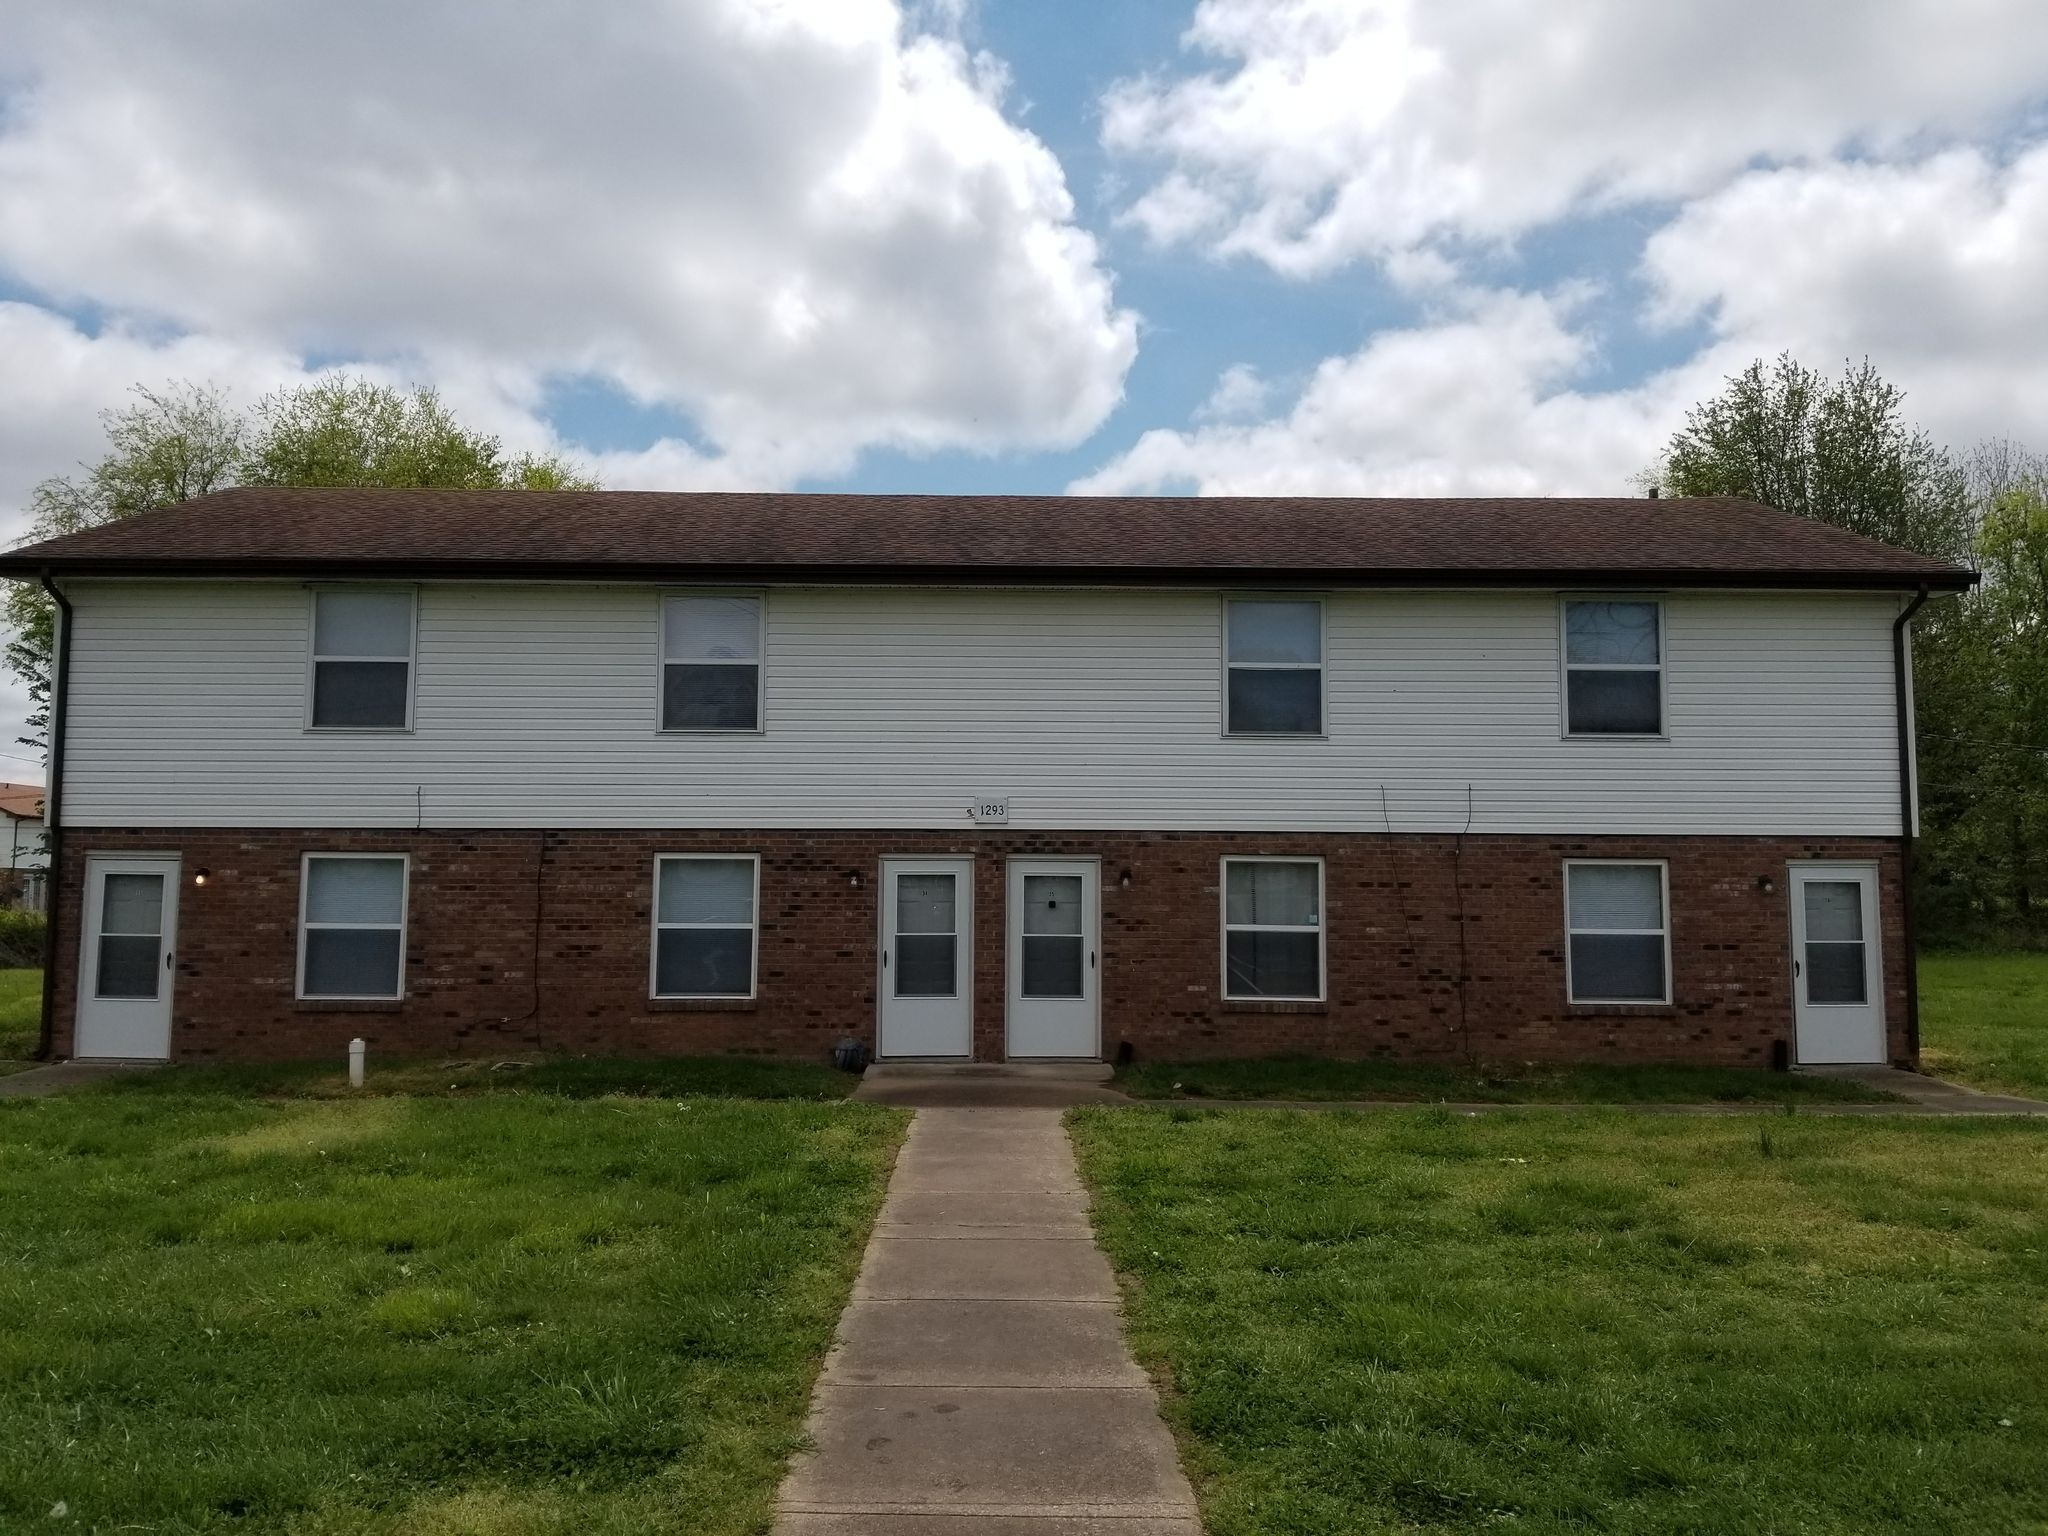 1293 Stateline Road, Oak Grove, KY 42262 - Oak Grove, KY real estate listing